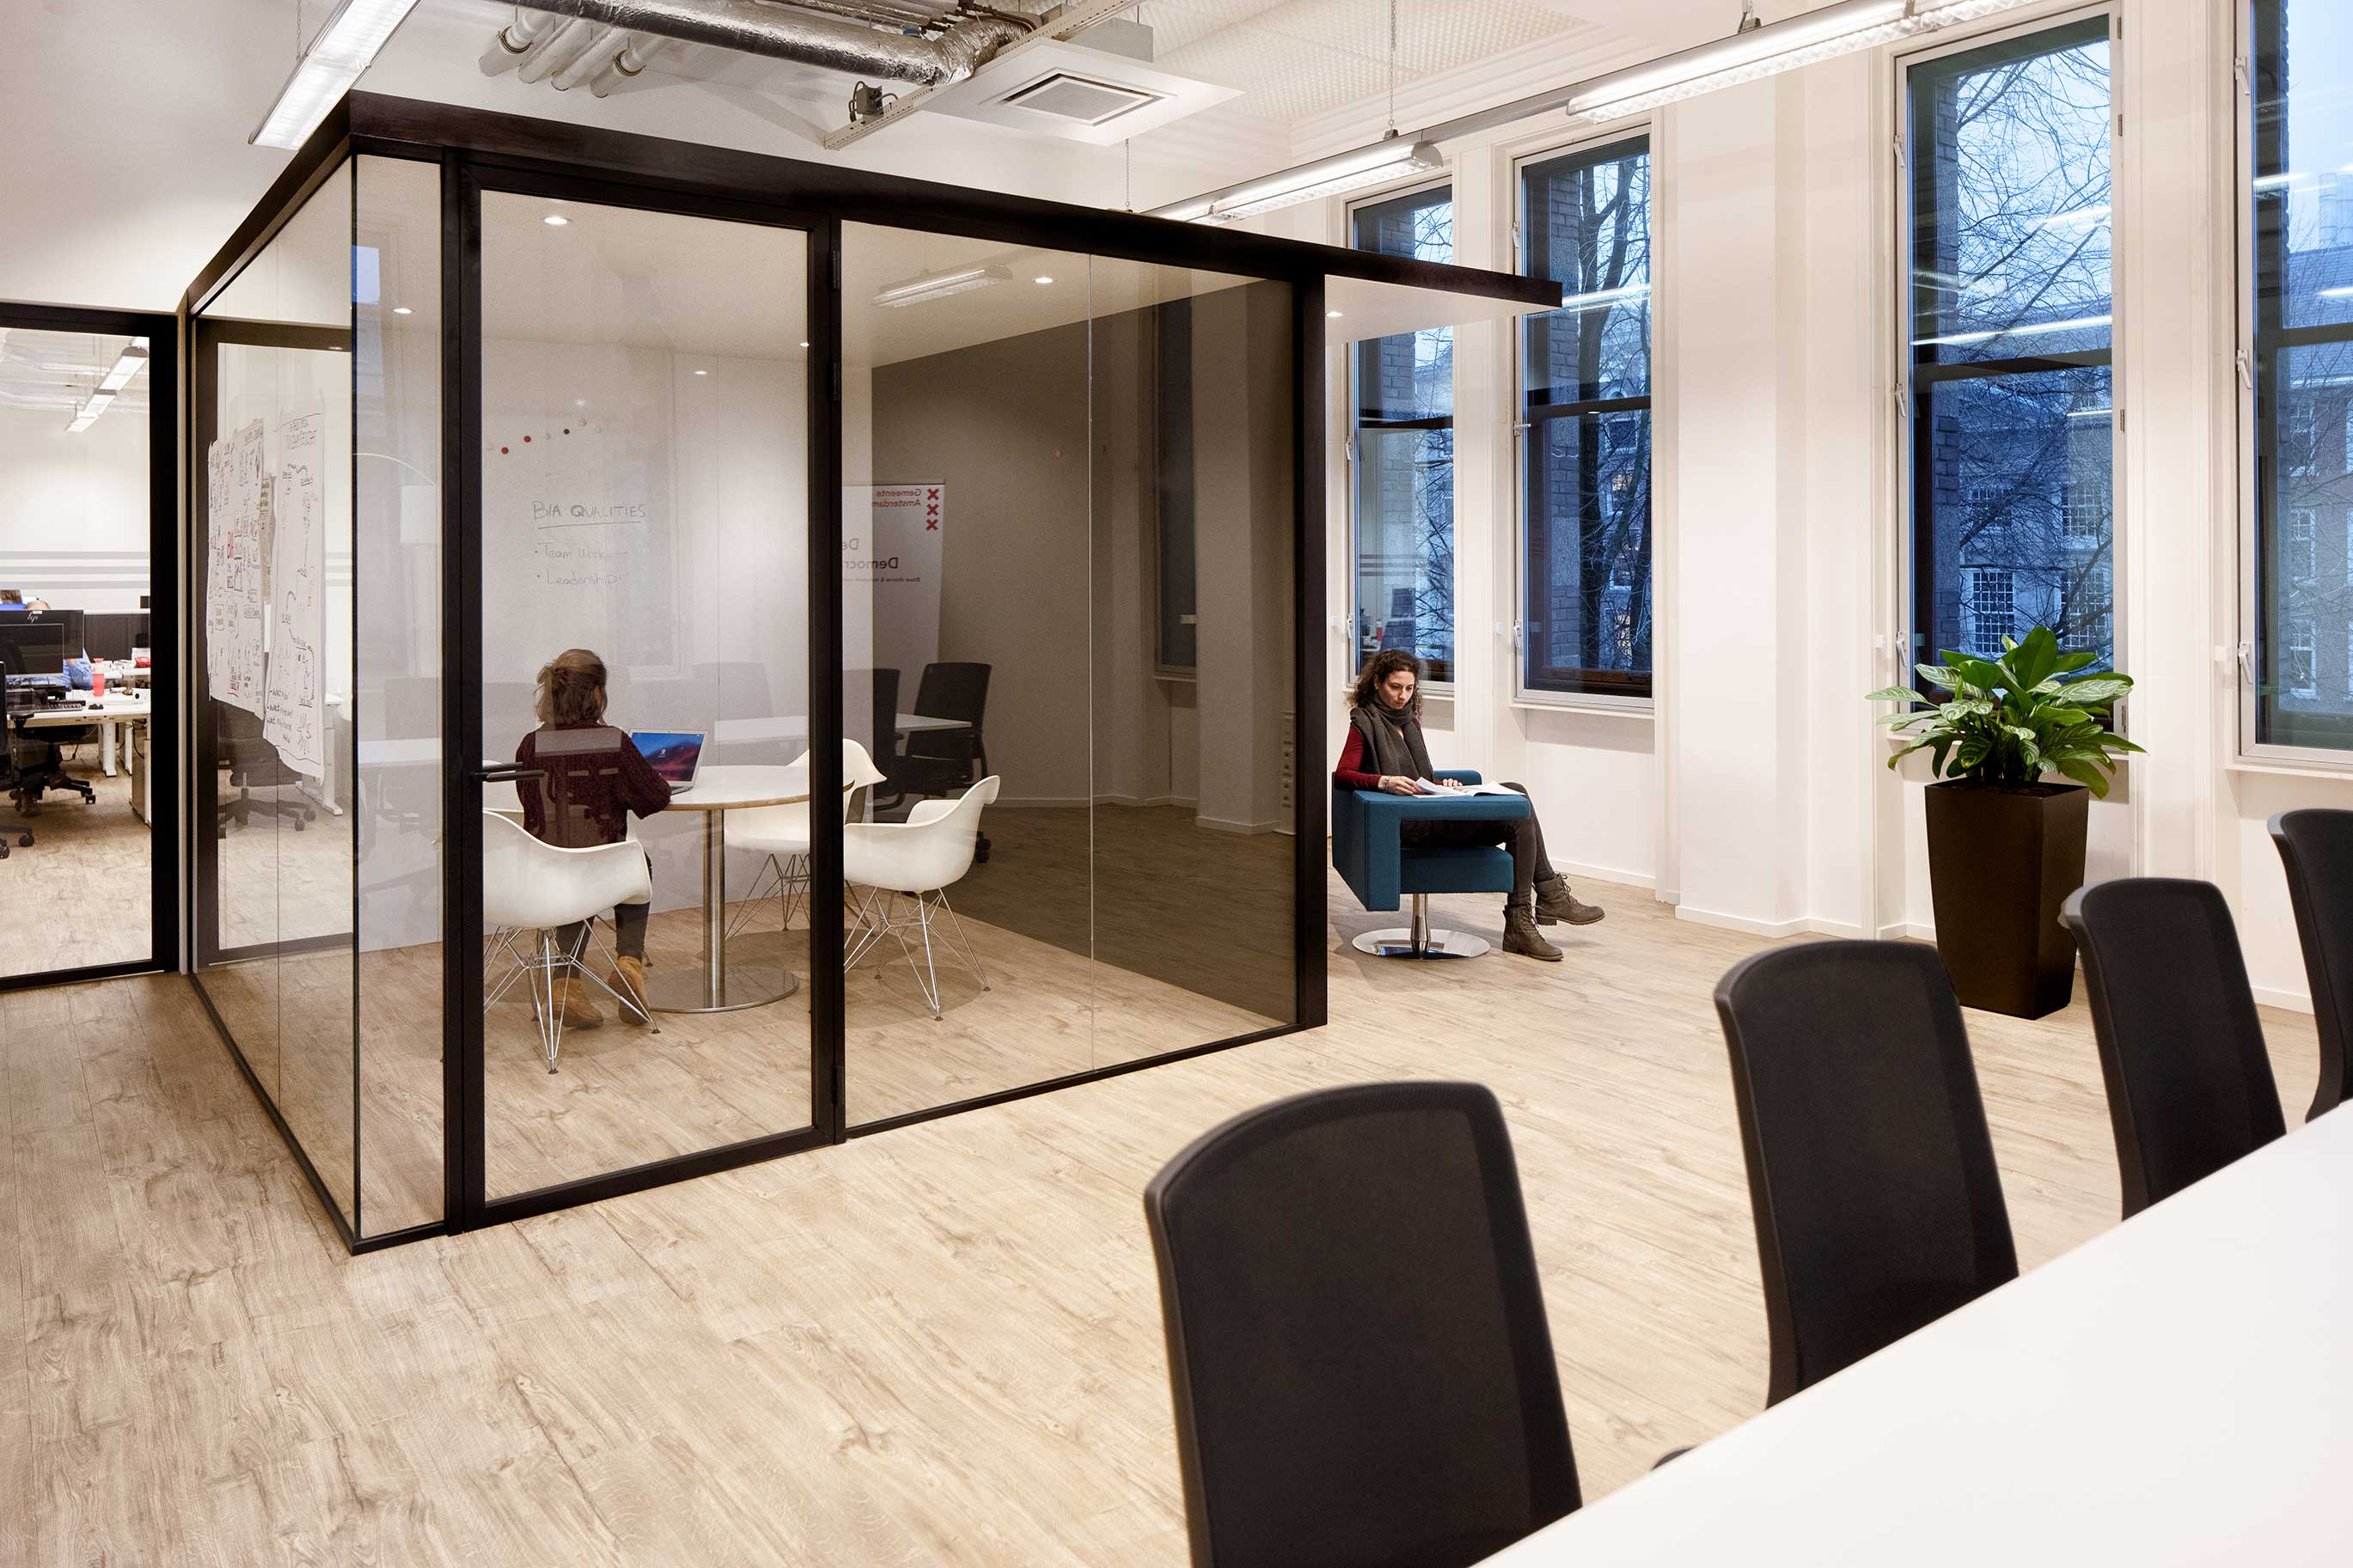 employe flexible private cube silent workstation room glassdoor buerau interim advies amsterdam